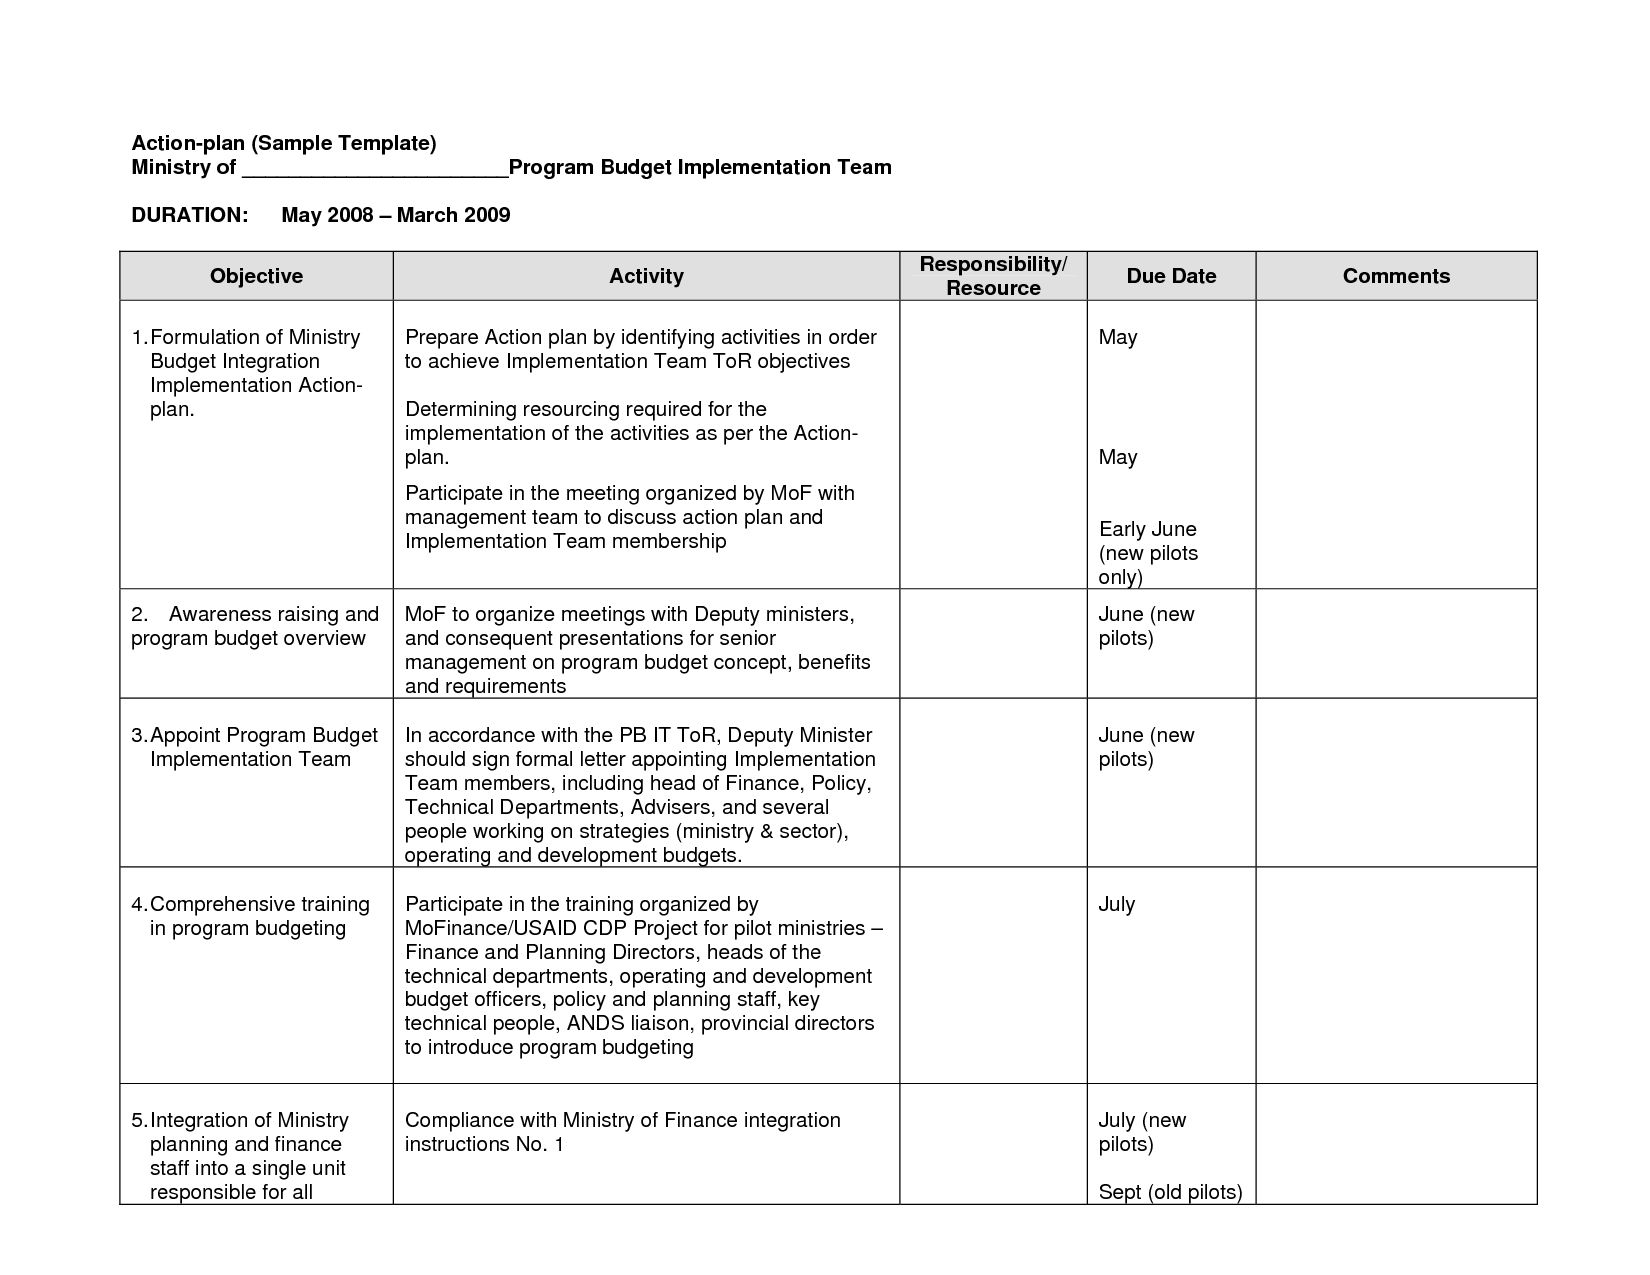 The extraordinary Action Plan (Sample Template